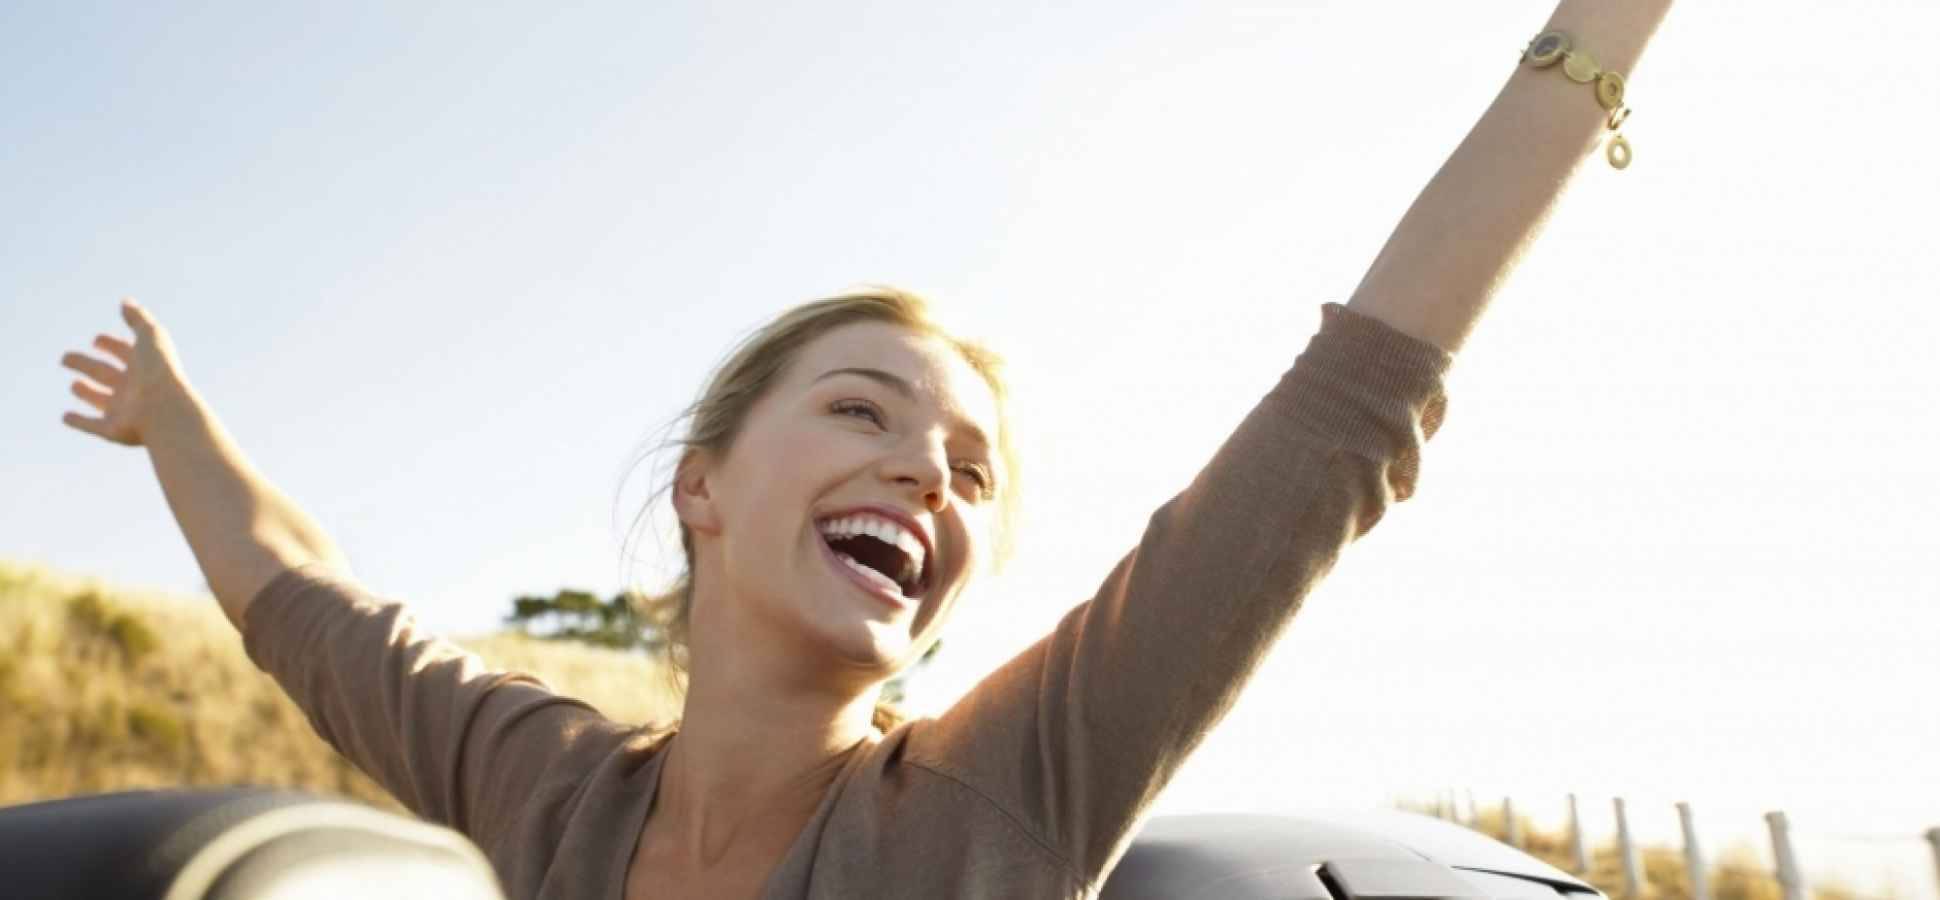 5 Powerful Actions Proven to Make You Happier